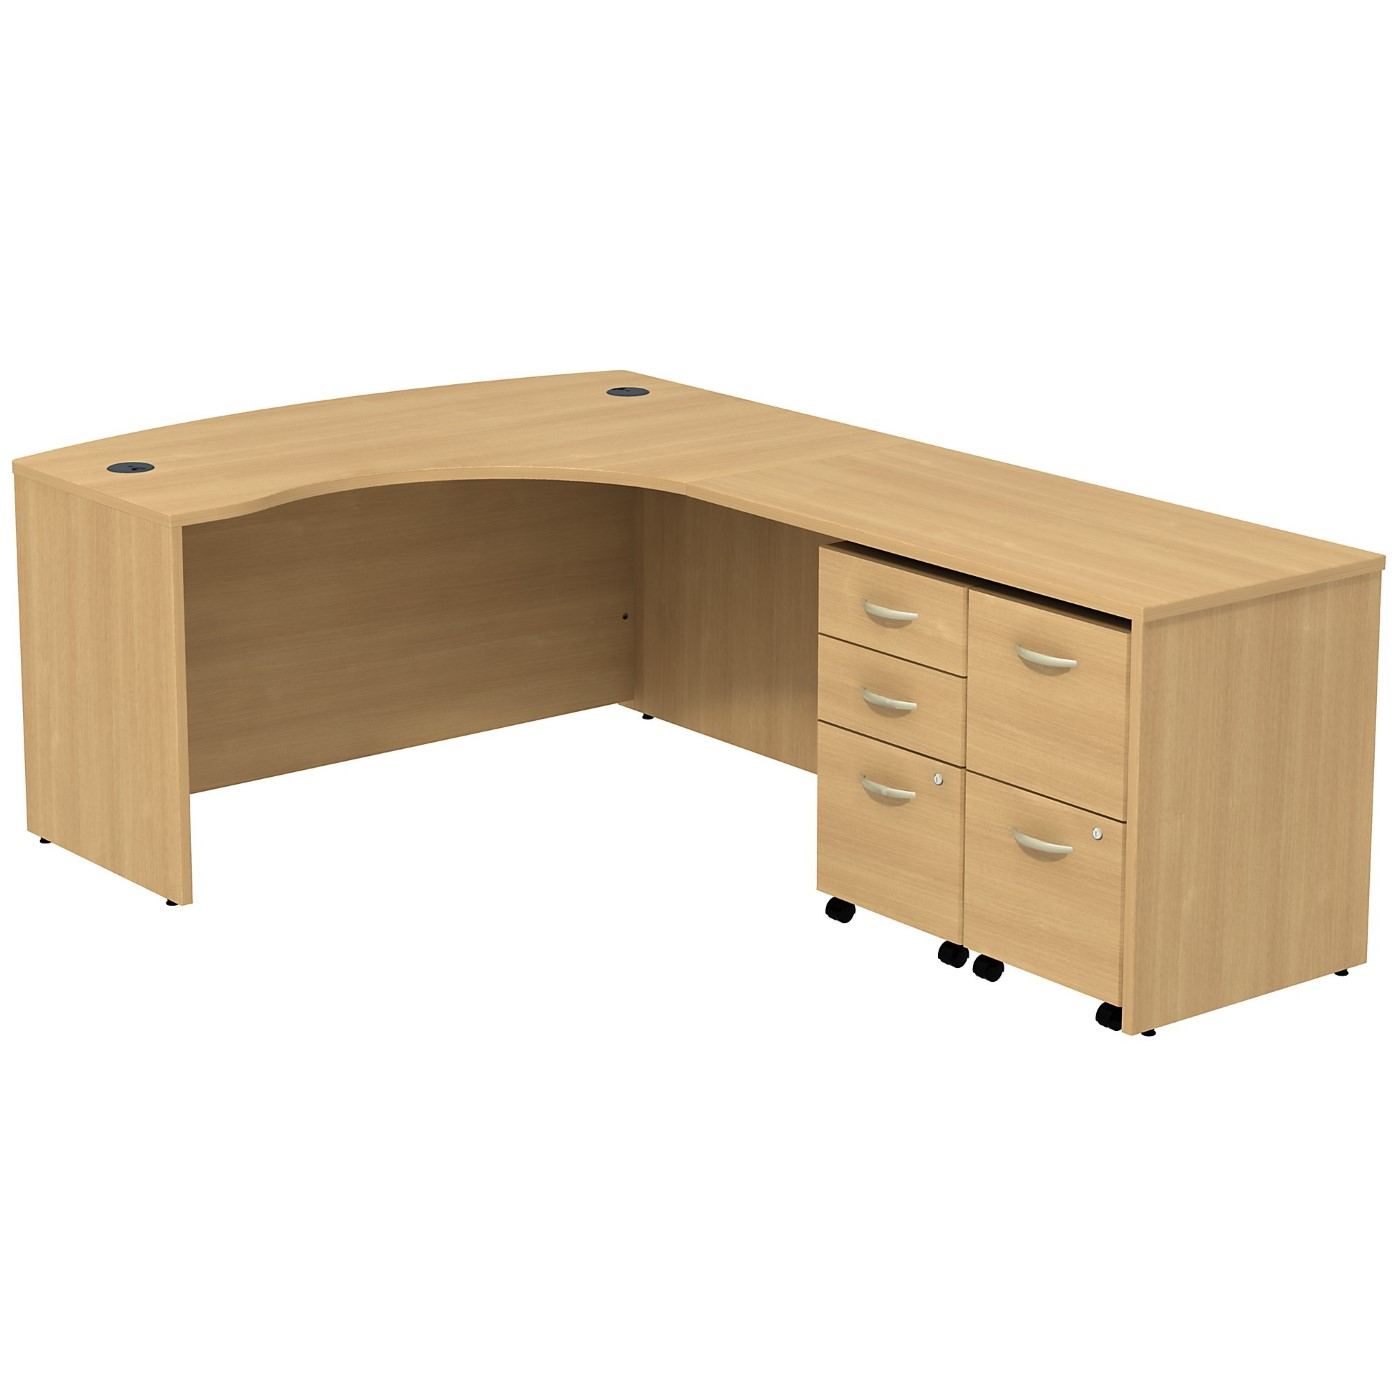 BUSH BUSINESS FURNITURE SERIES C BOW FRONT RIGHT HANDED L SHAPED DESK WITH 2 MOBILE PEDESTALS. FREE SHIPPING